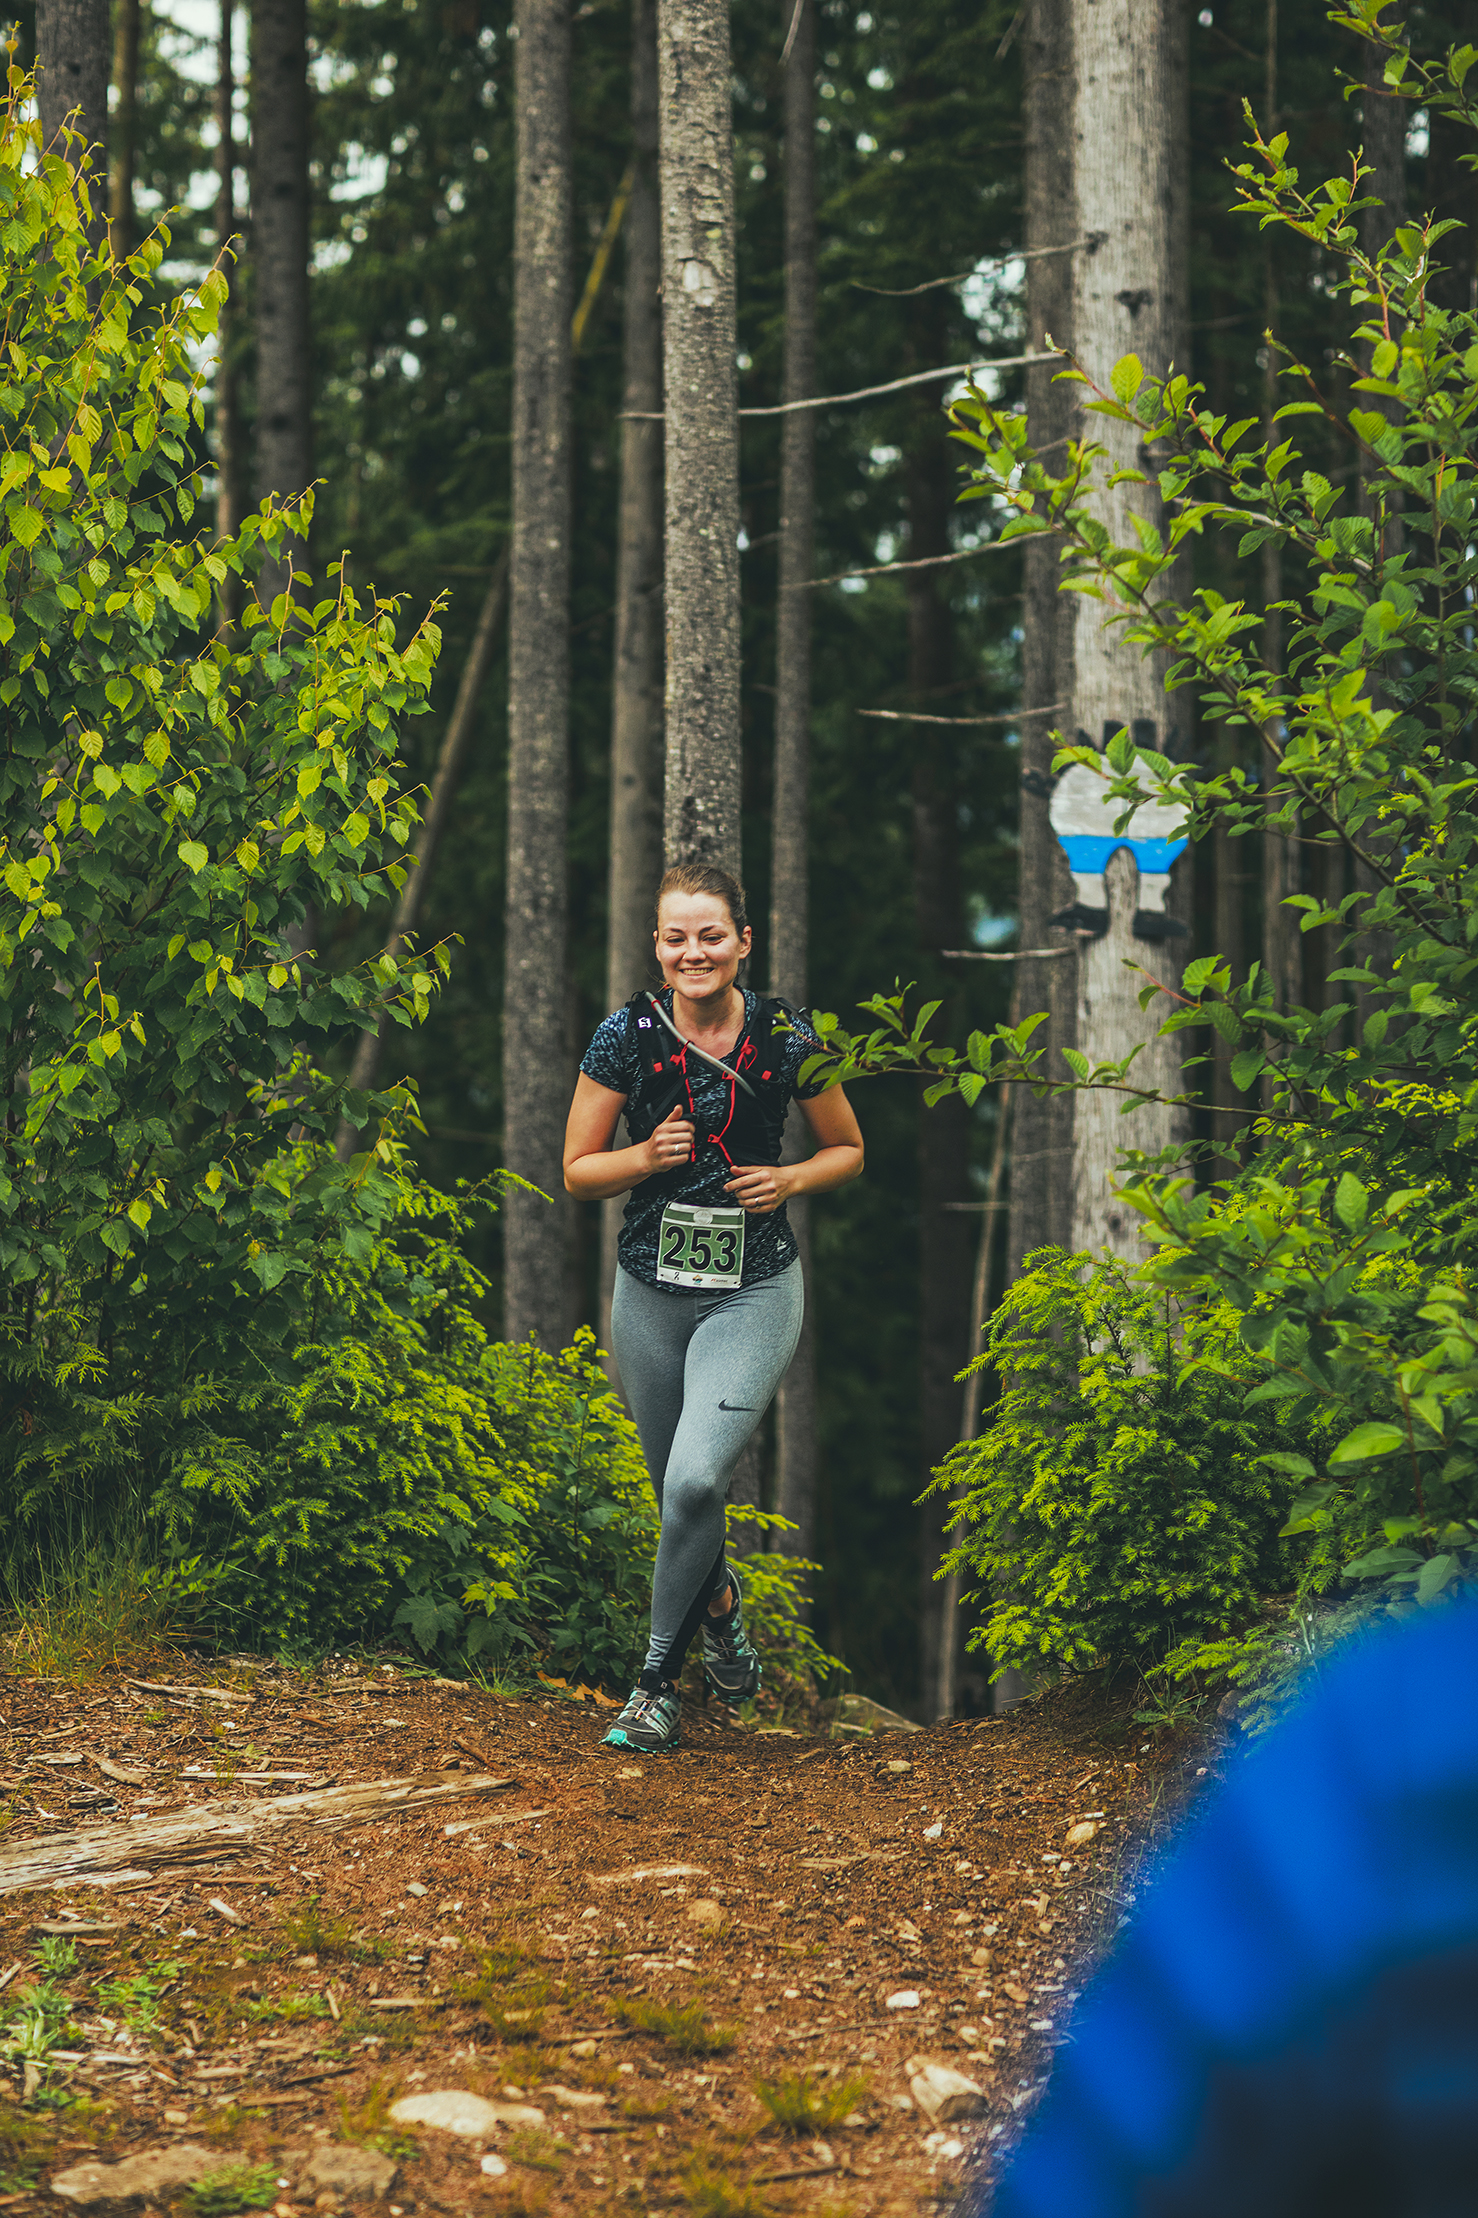 Fraser Valley Trail Races - Bear Mountain - IMG_1711 by Brice Ferre Studio - Vancouver Portrait Adventure and Athlete Photographer.jpg